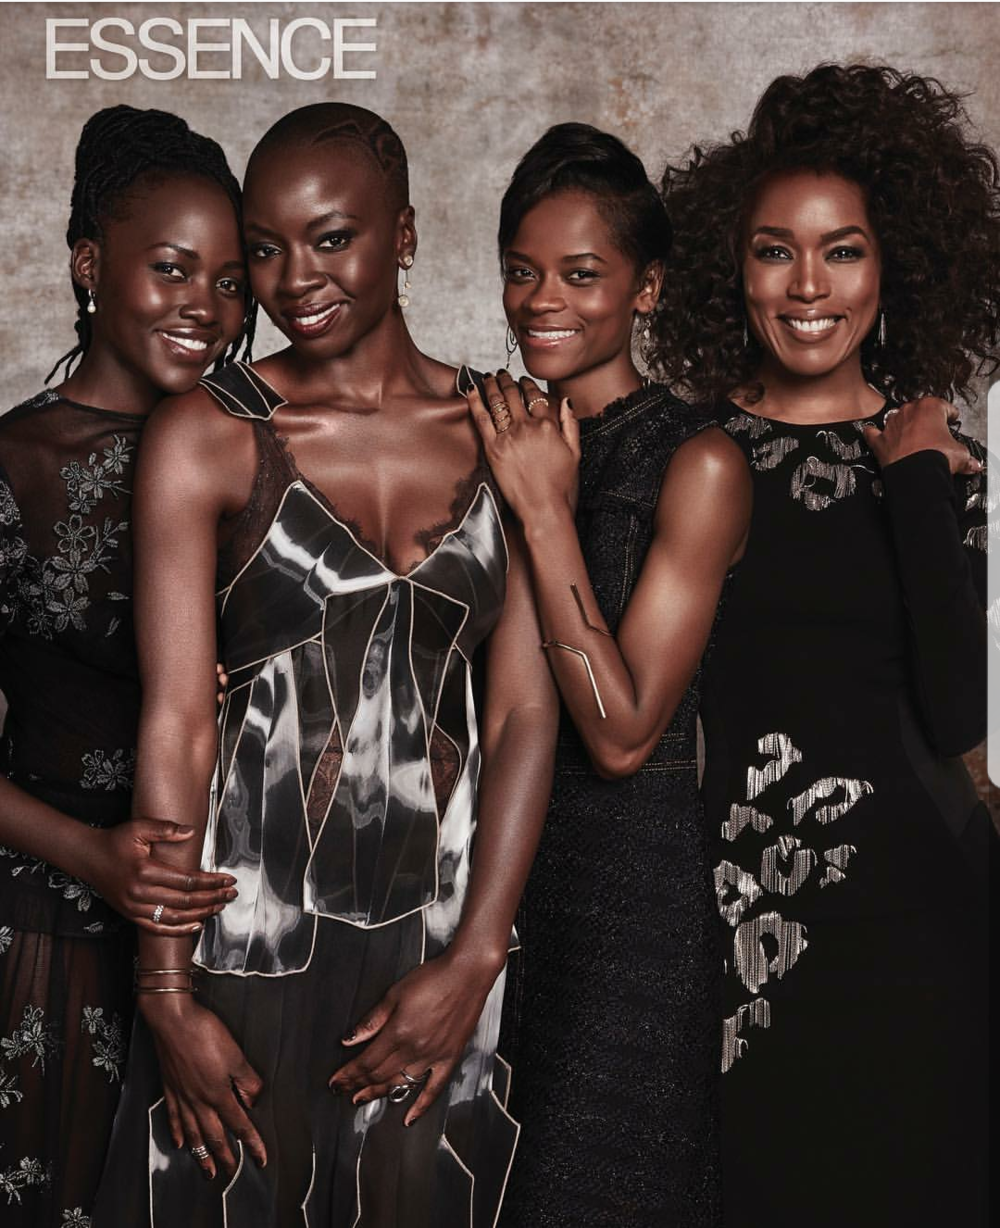 Nakia (Lupita Nyong'o),   Okoye (Danai Gurira),   Shuri (Letitia Wright),   Queen Ramonda (Angela Bassett) in Essence. Photo: Dennis Leupold